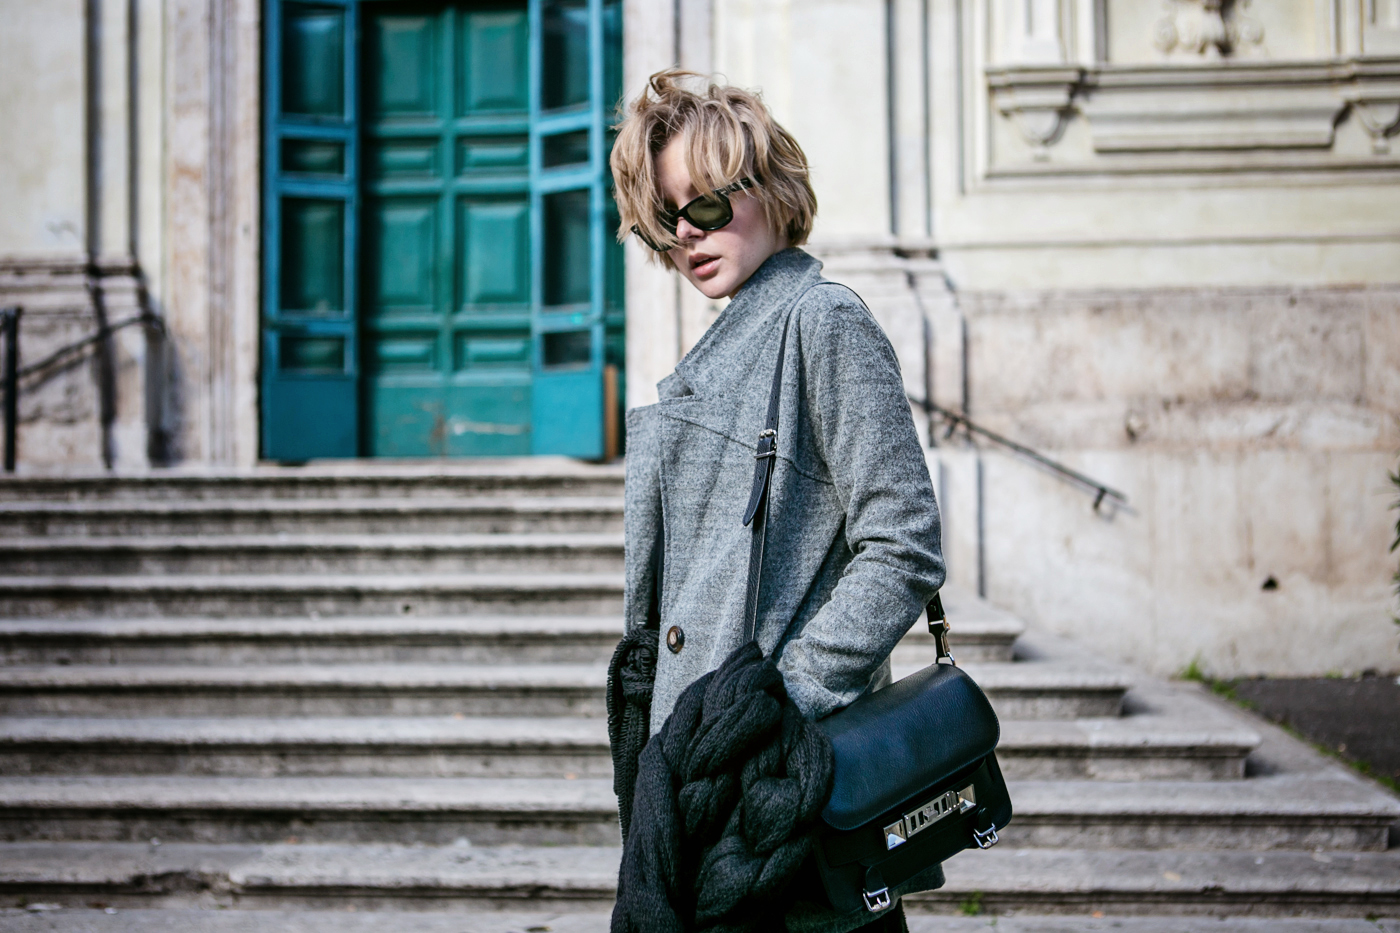 darya kamalova from thecablook com during the trip to Rome walking in the center of the city and wearing chicwish grey coat and laced up booties with proenza schouler ps11 black leather bag-25